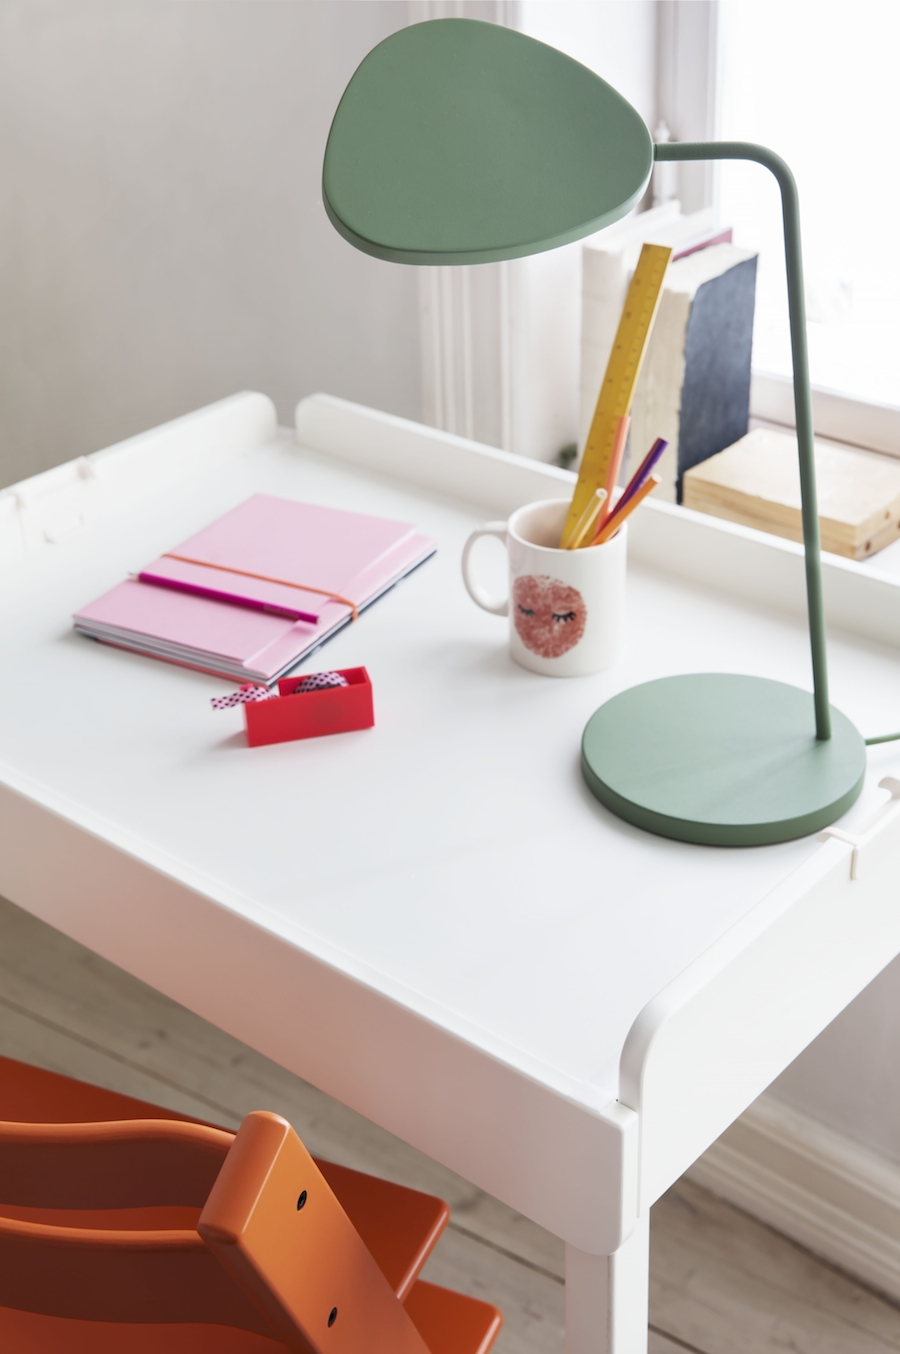 Stokke Home Desk